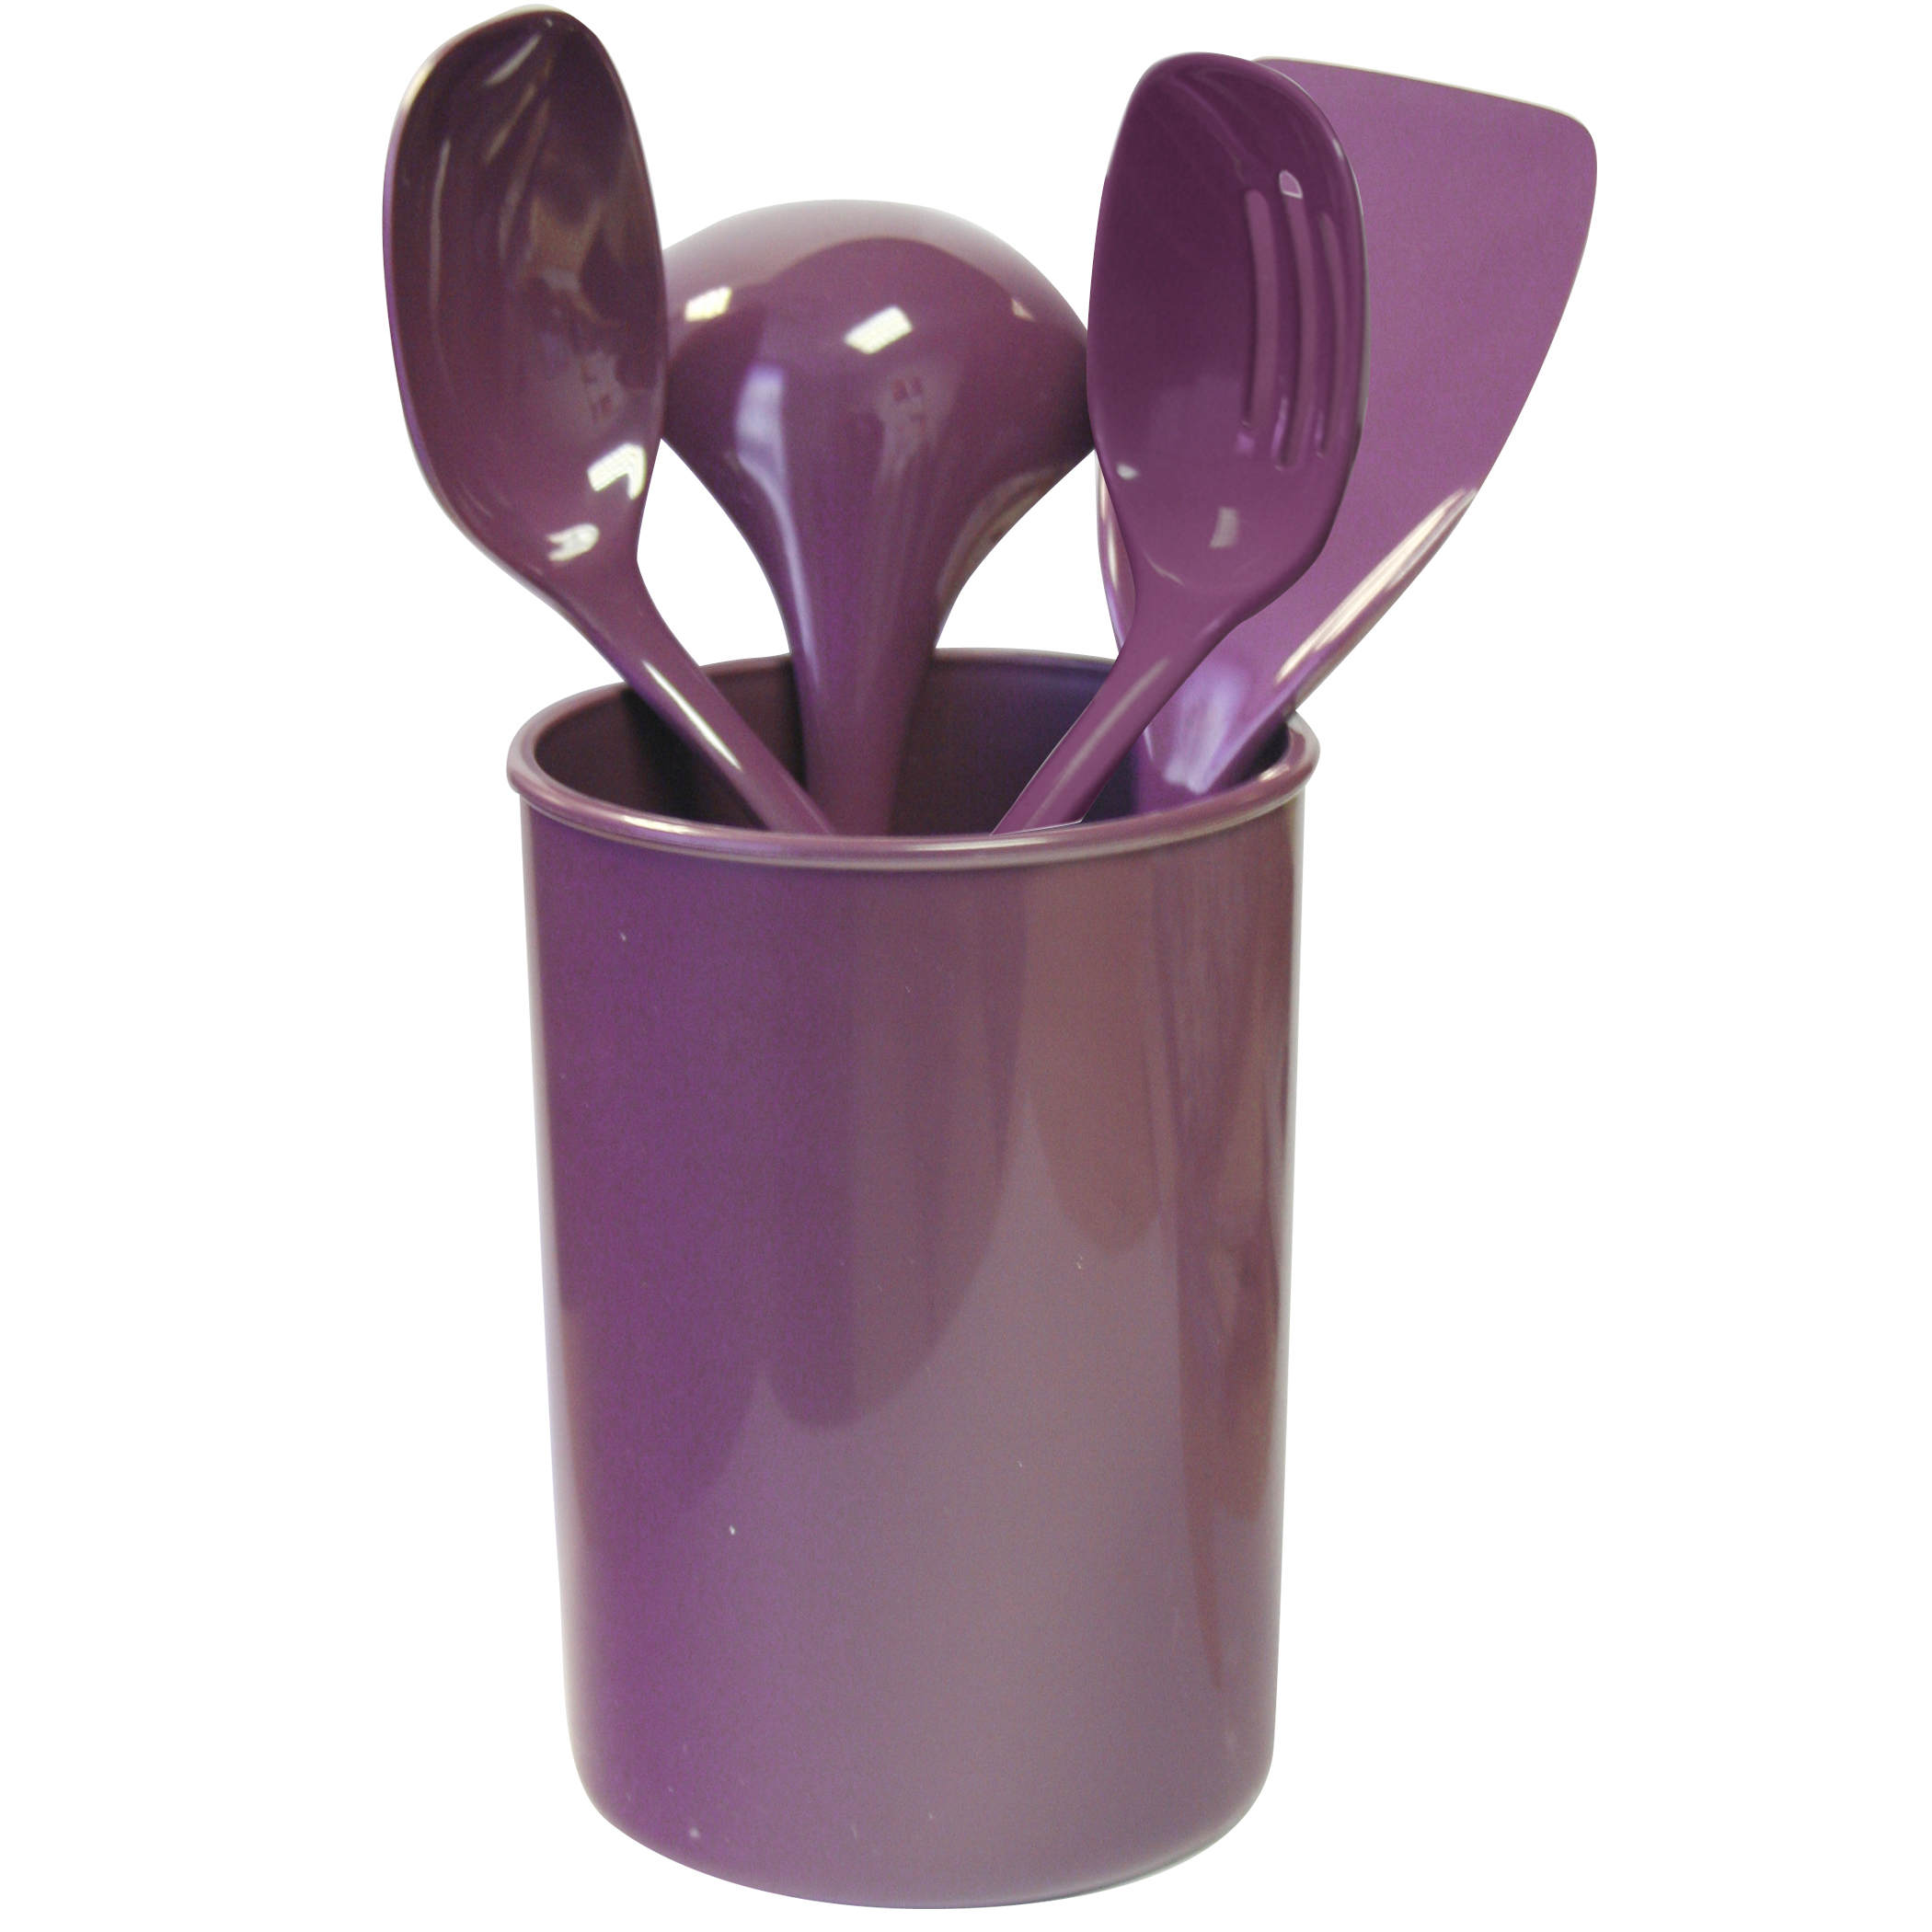 Comes with Spoon Rest Calypso Basics 5pc Kitchen Utensil Set